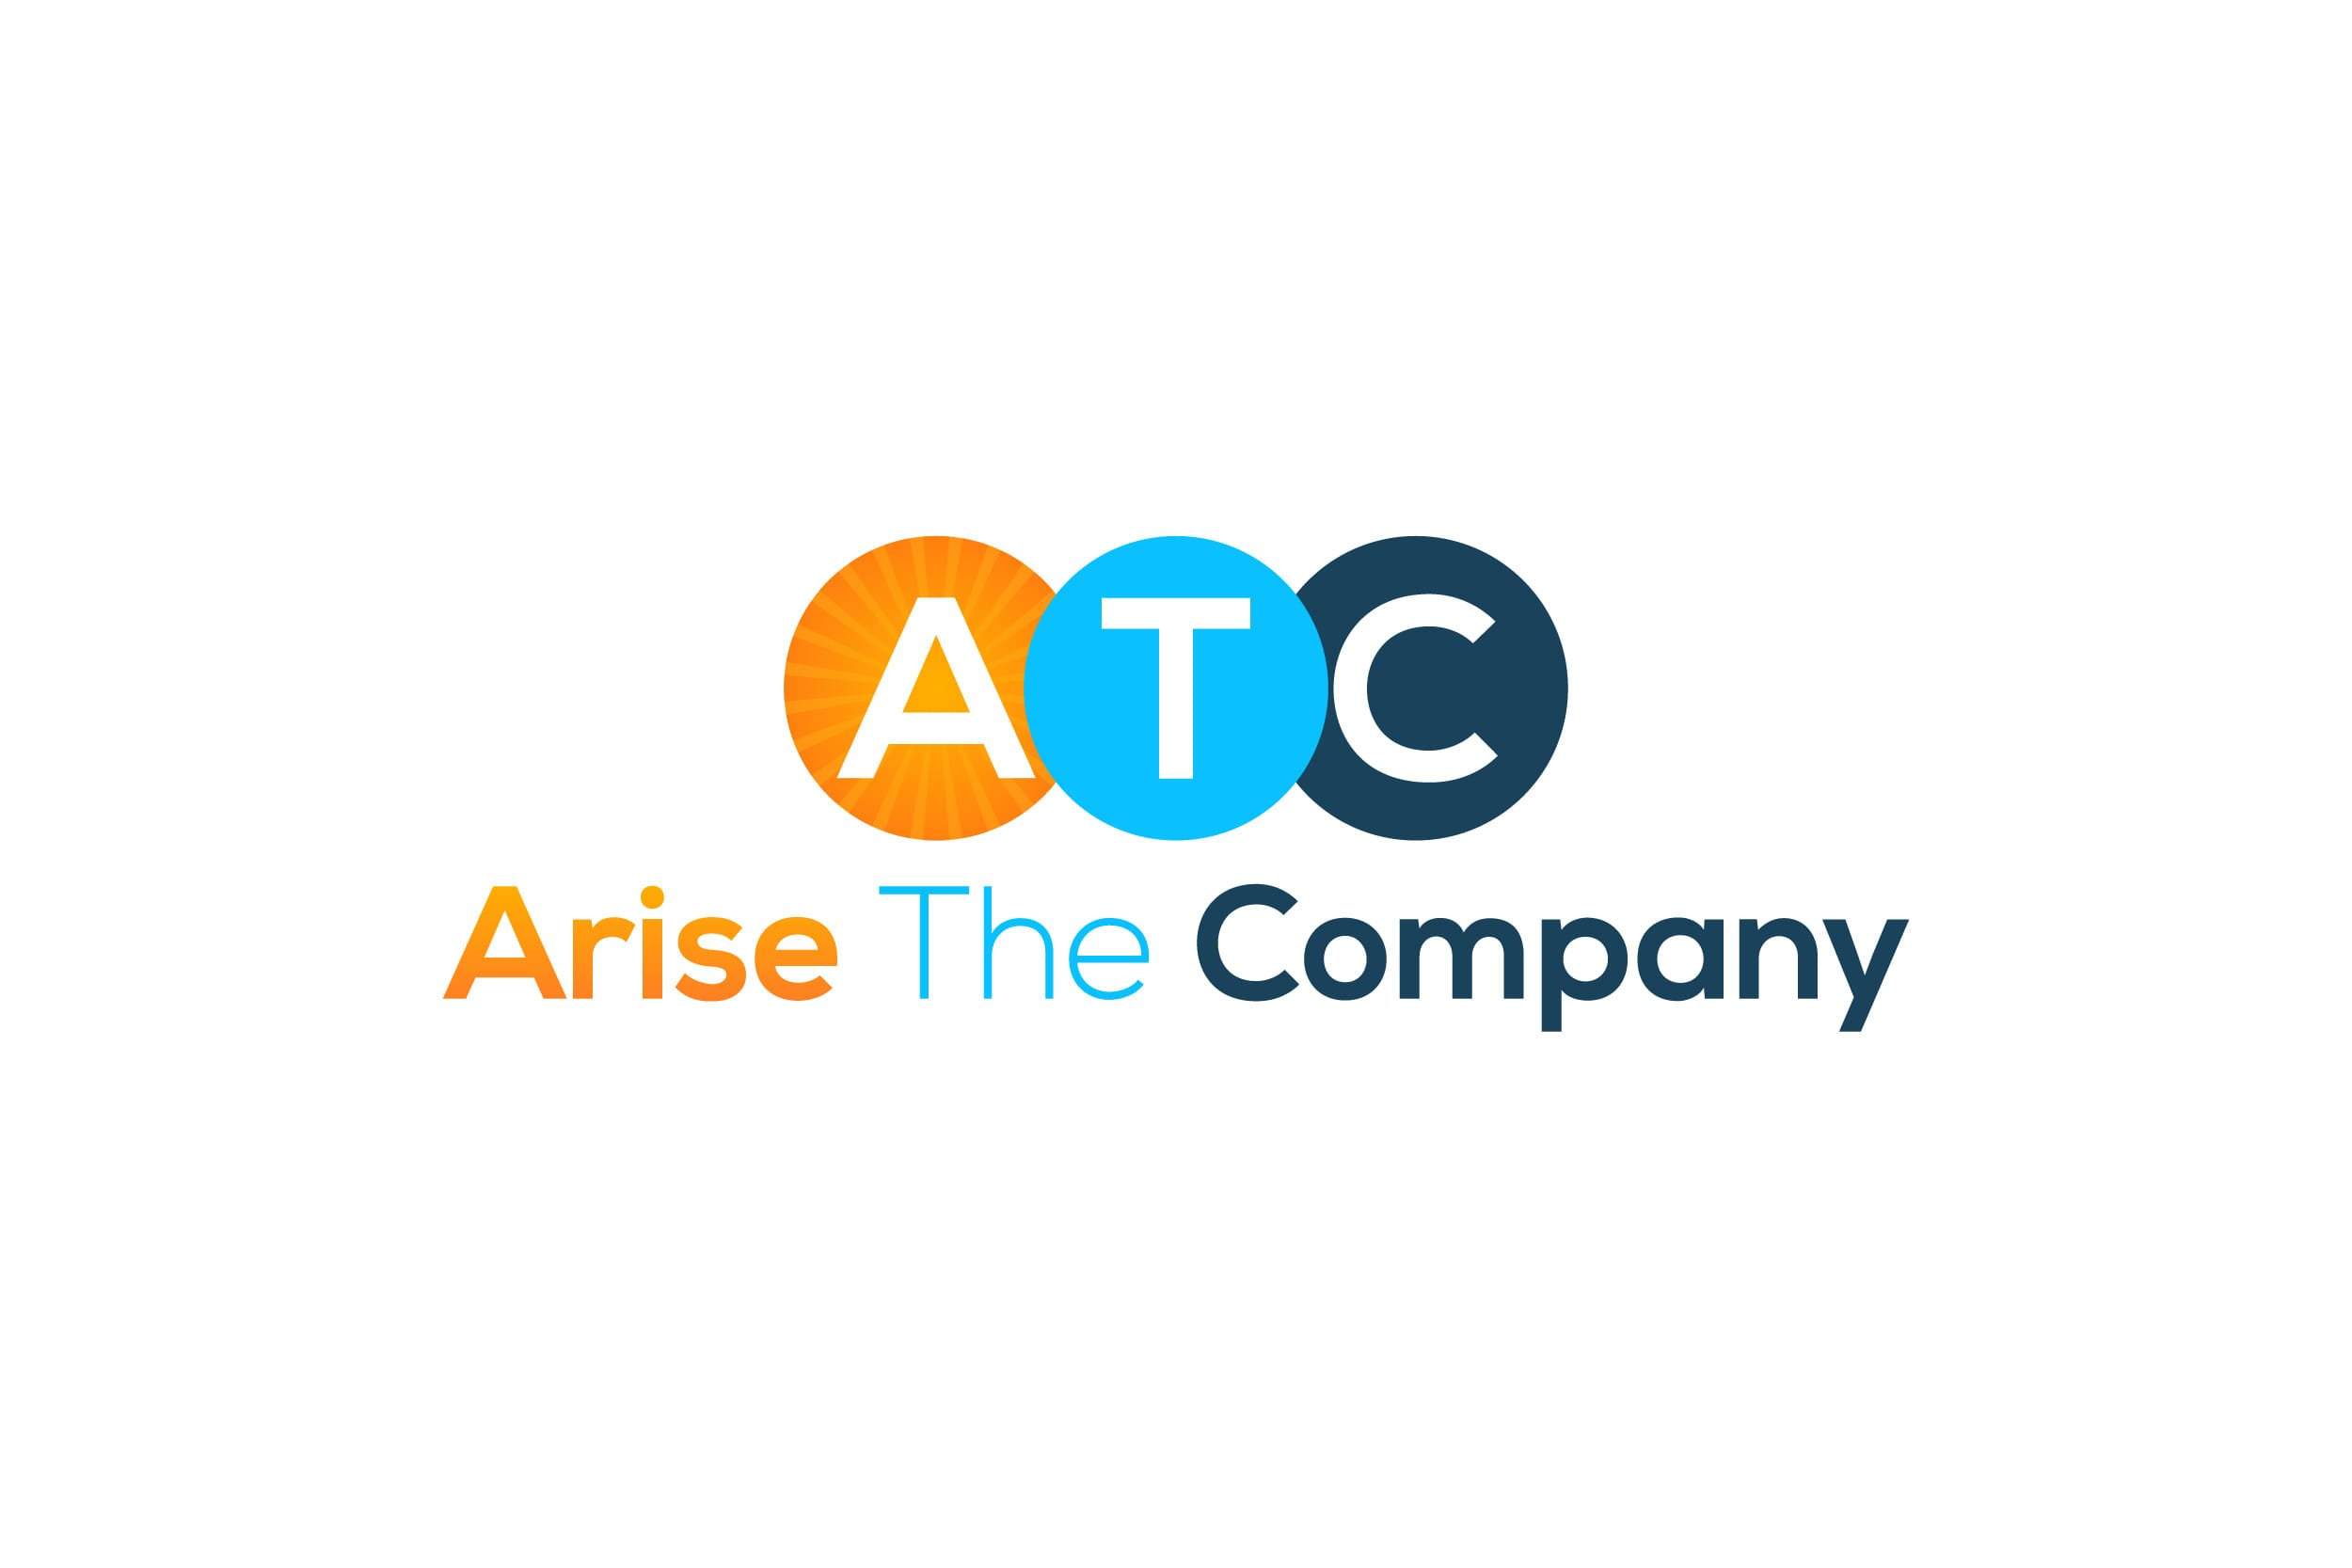 Arise The Company